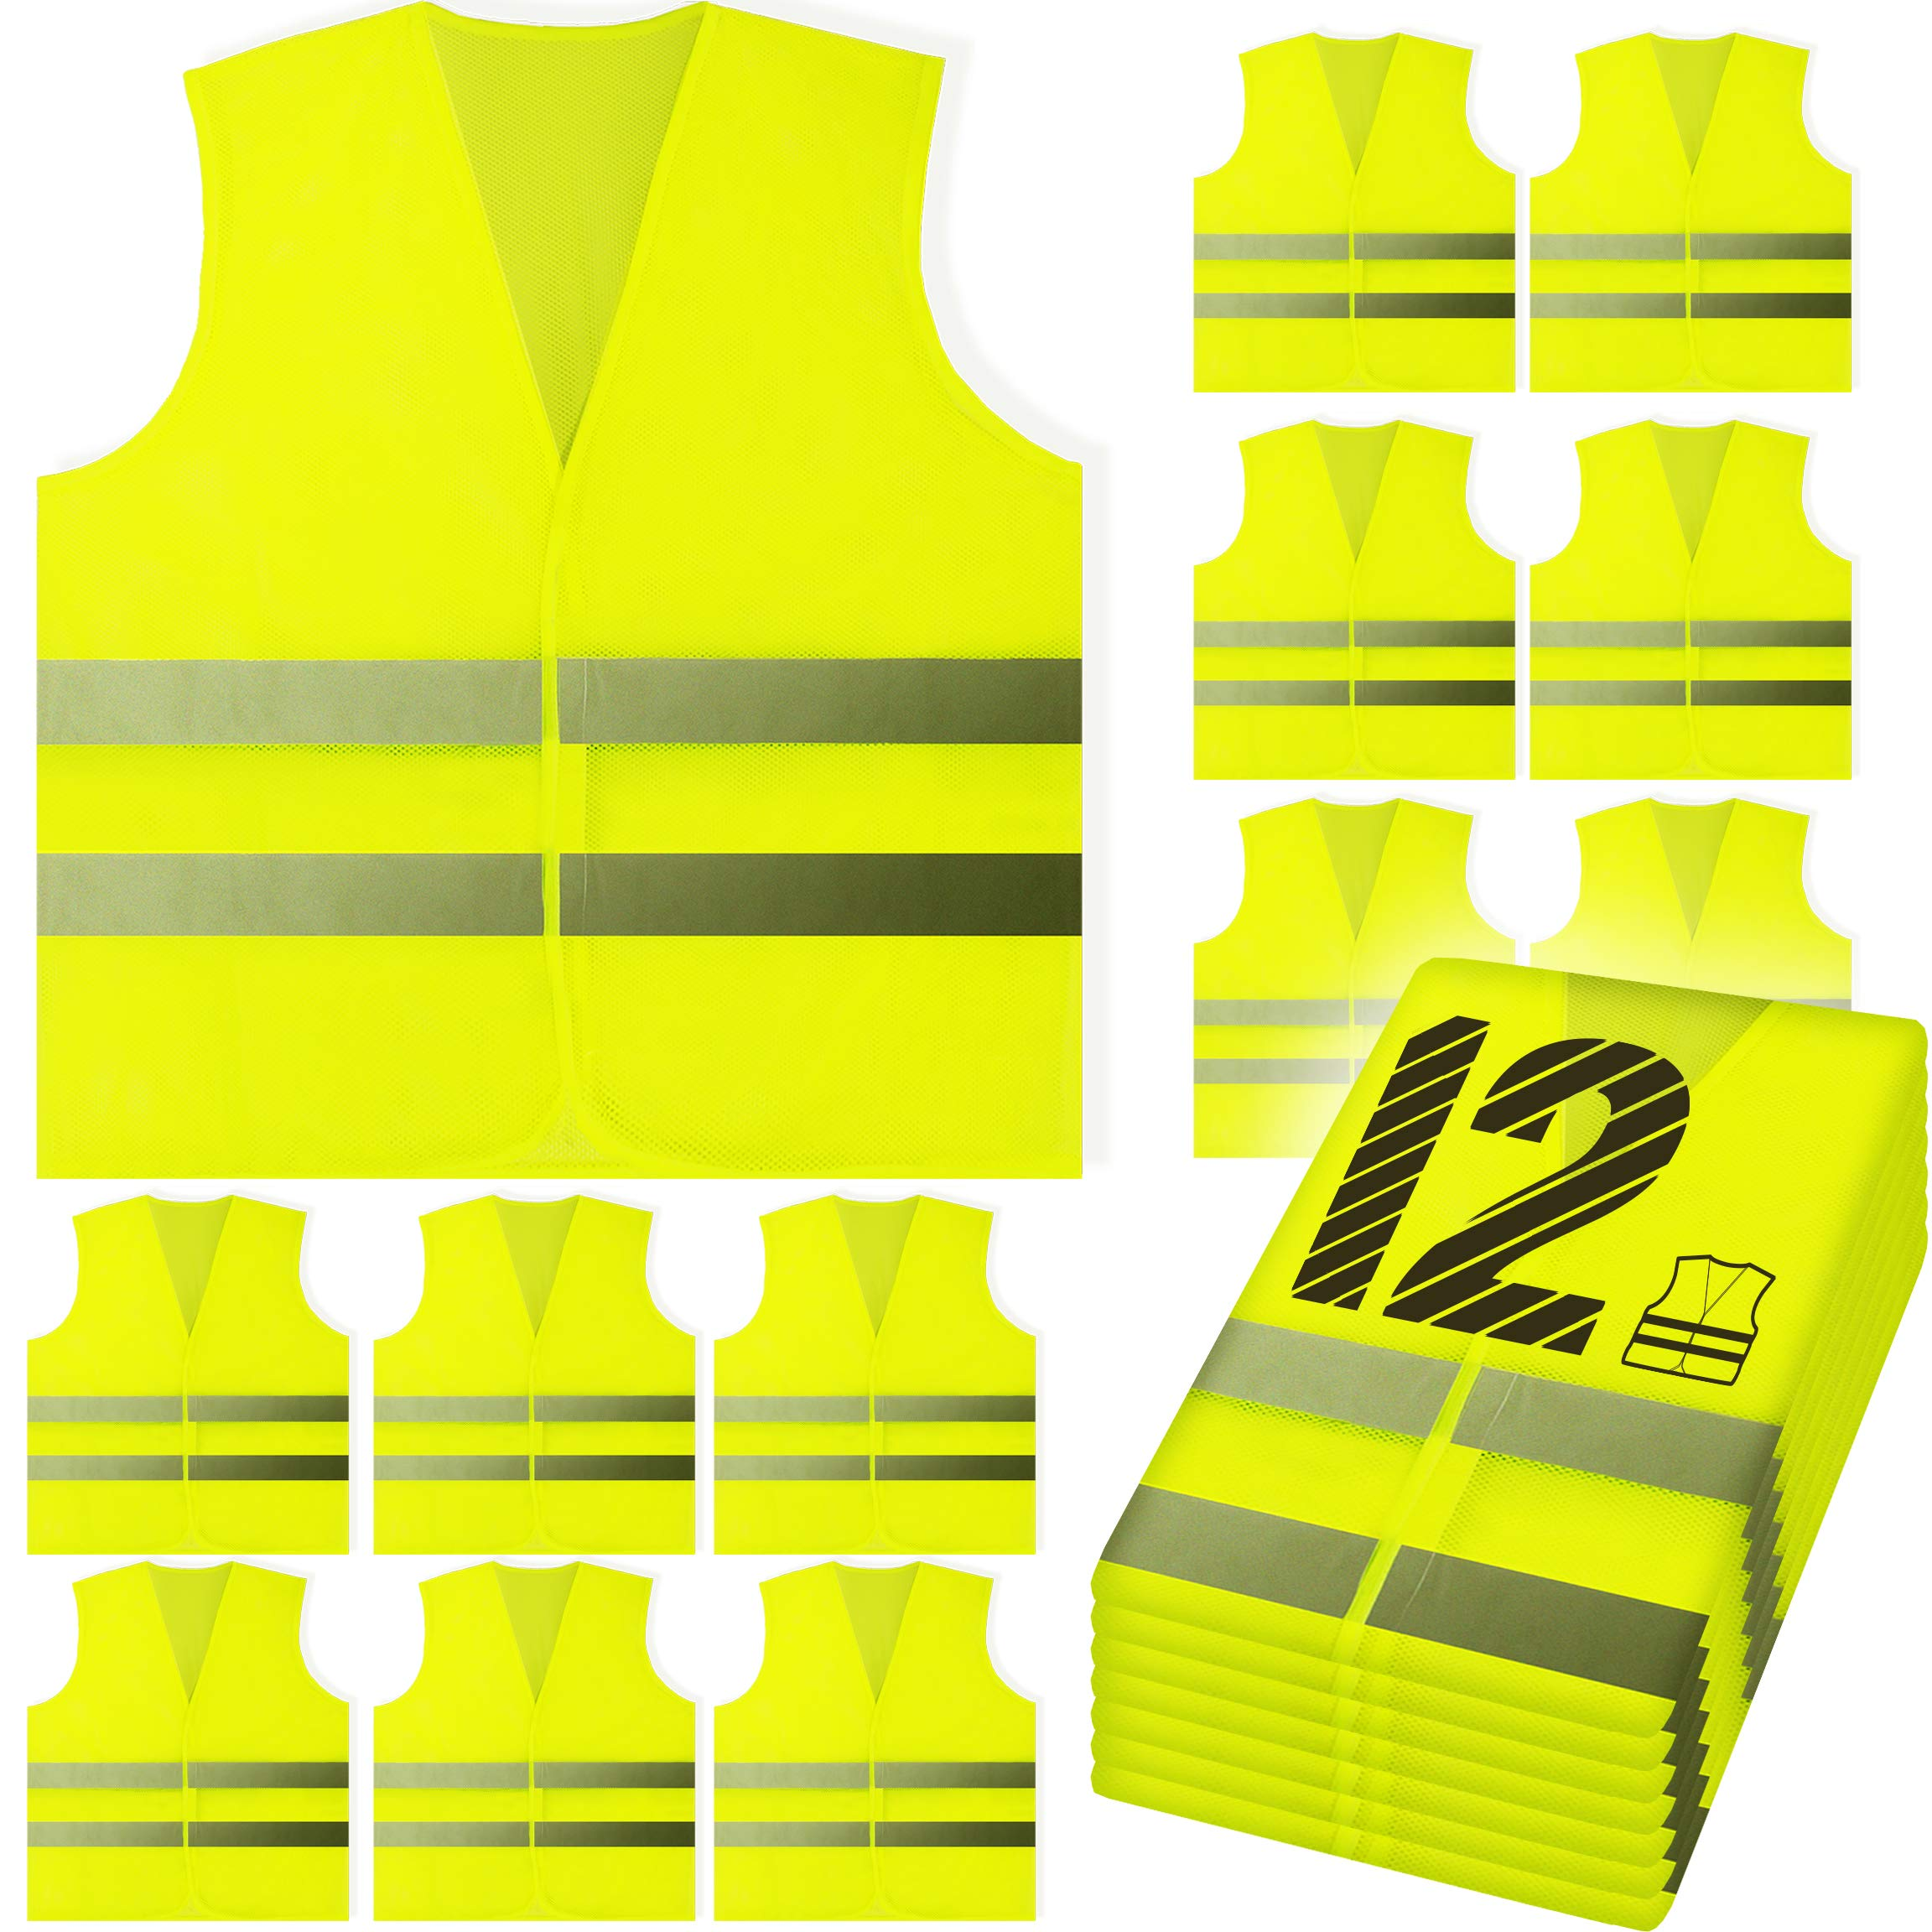 PeerBasics, 12 Pack Safety Vest, Yellow Reflective High Visibility, Hi Vis Silver Strip, Men & Women, Work, Cycling, Runner, Surveyor, Volunteer, Crossing Guard, Road, Construction (Yellow Mesh, 12)